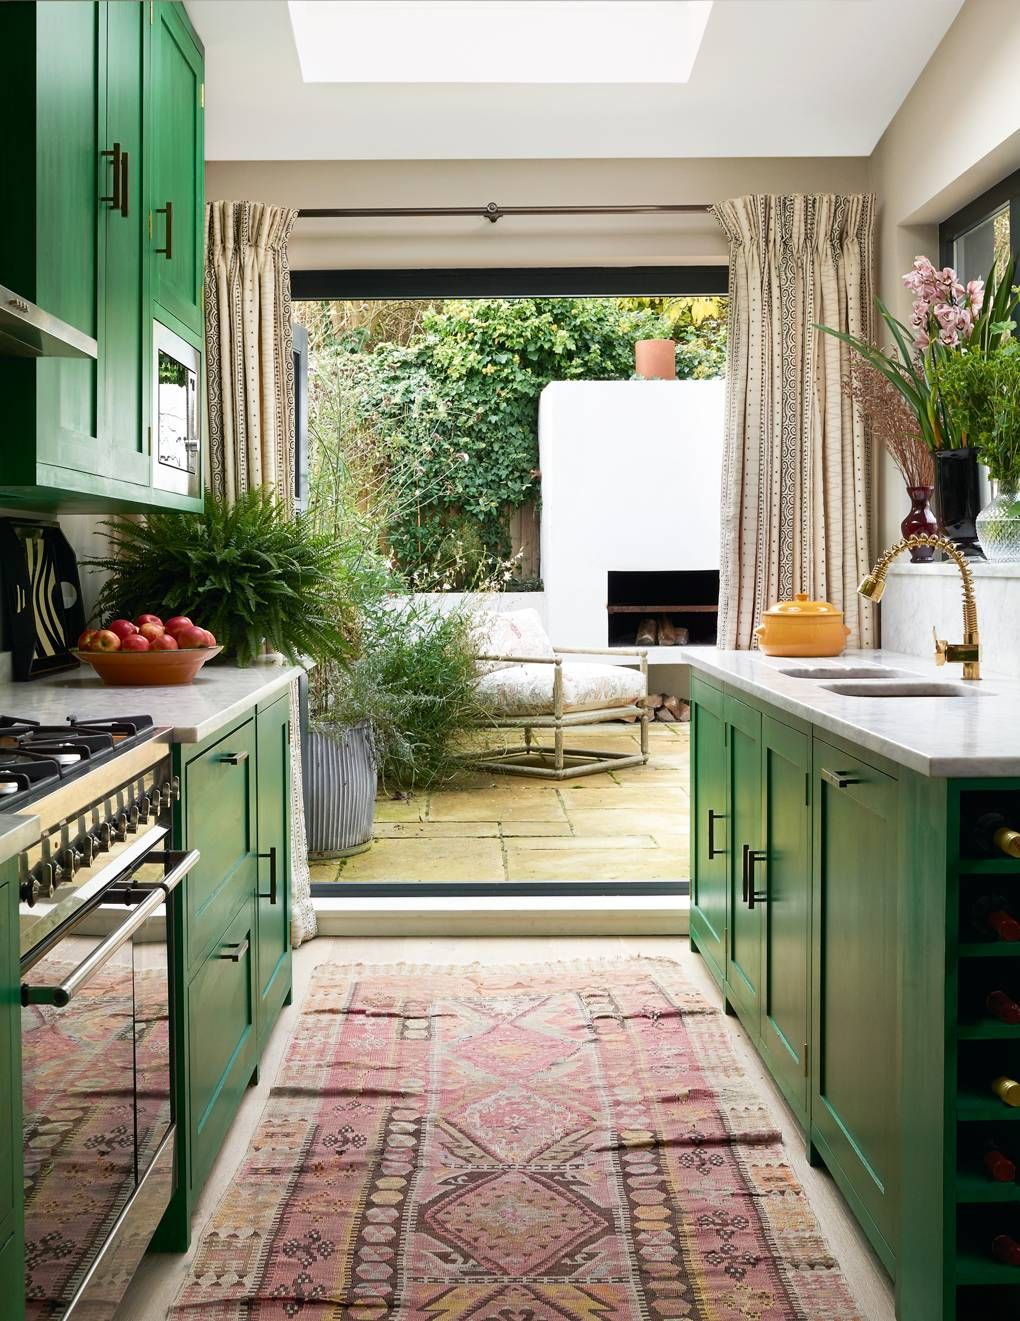 Sophie Ashby and Charlie CaselyHayford's flat in west